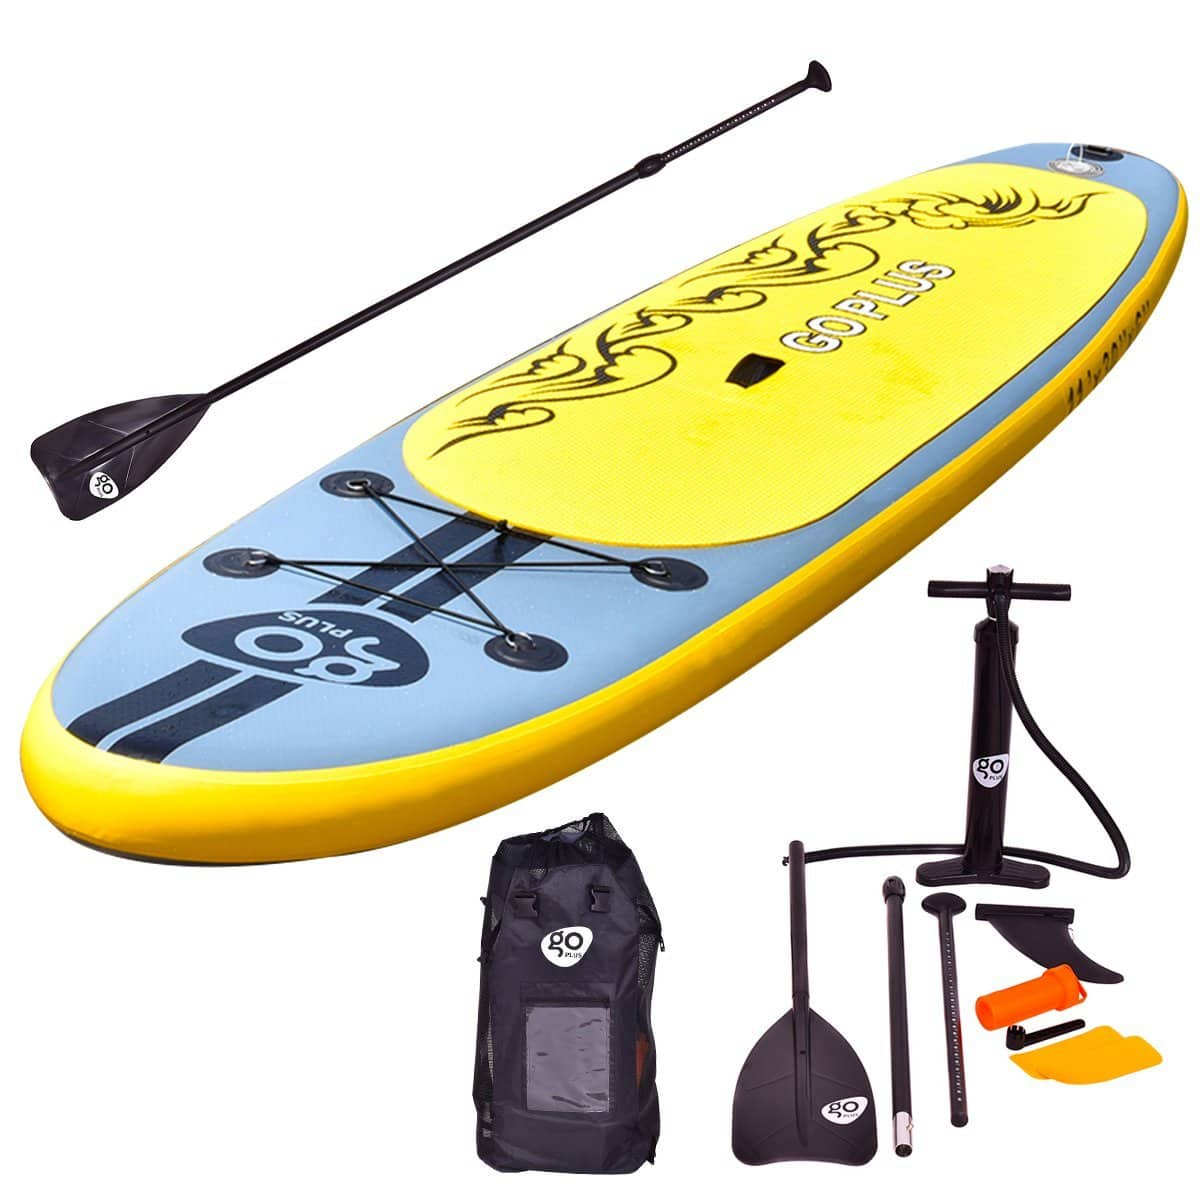 "SUP Inflatable 11' x 6"" thick - $260 (Price Drop!) $259.99"